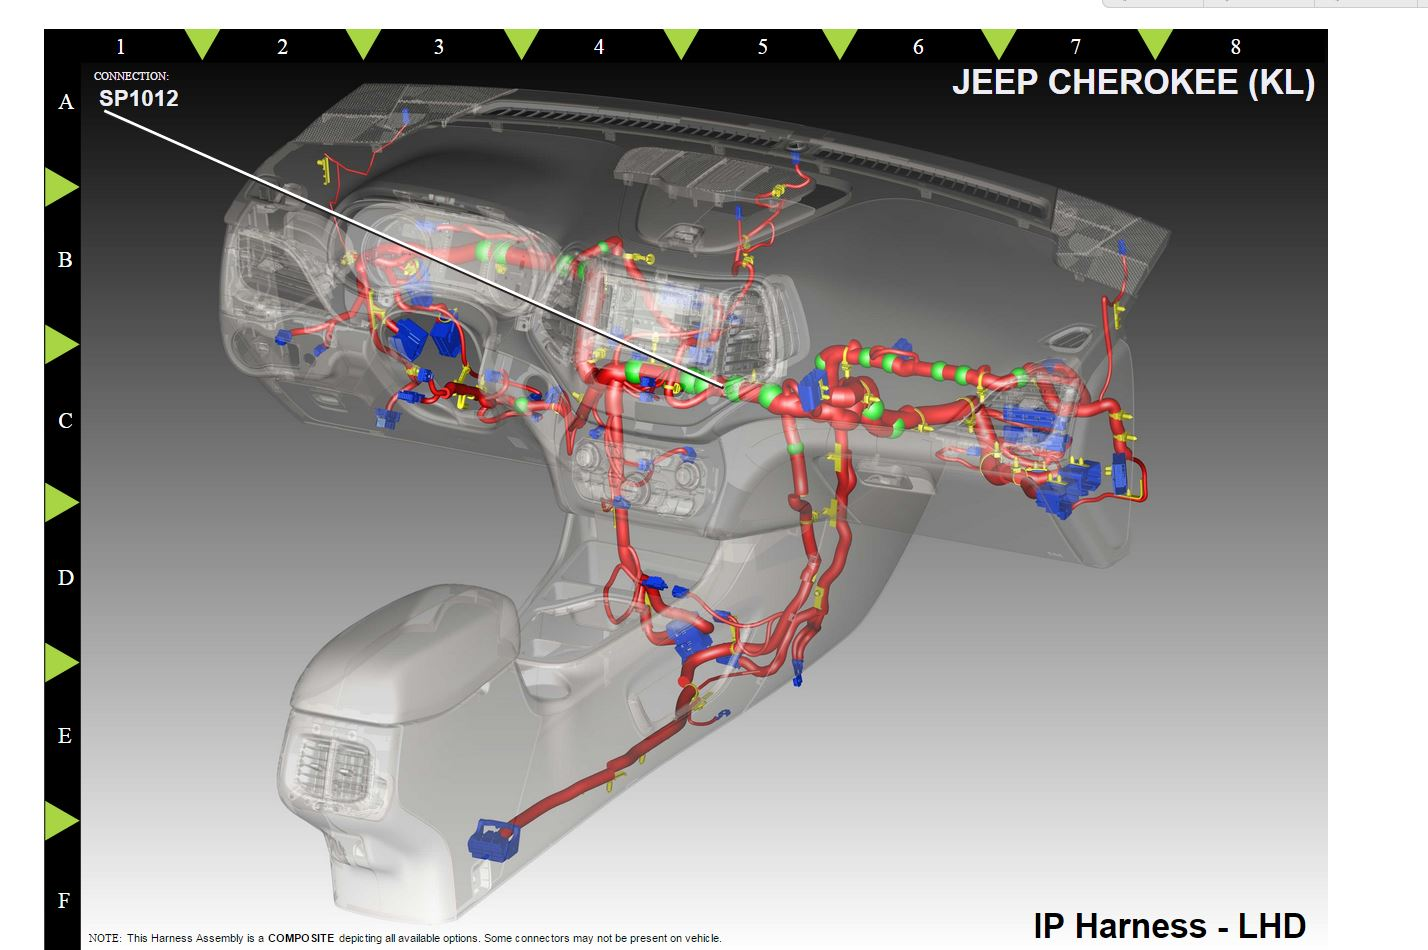 Wiring diagram resource bonanza here 2014 jeep cherokee forums click image for larger version name spliceg views 4377 size 1417 asfbconference2016 Gallery